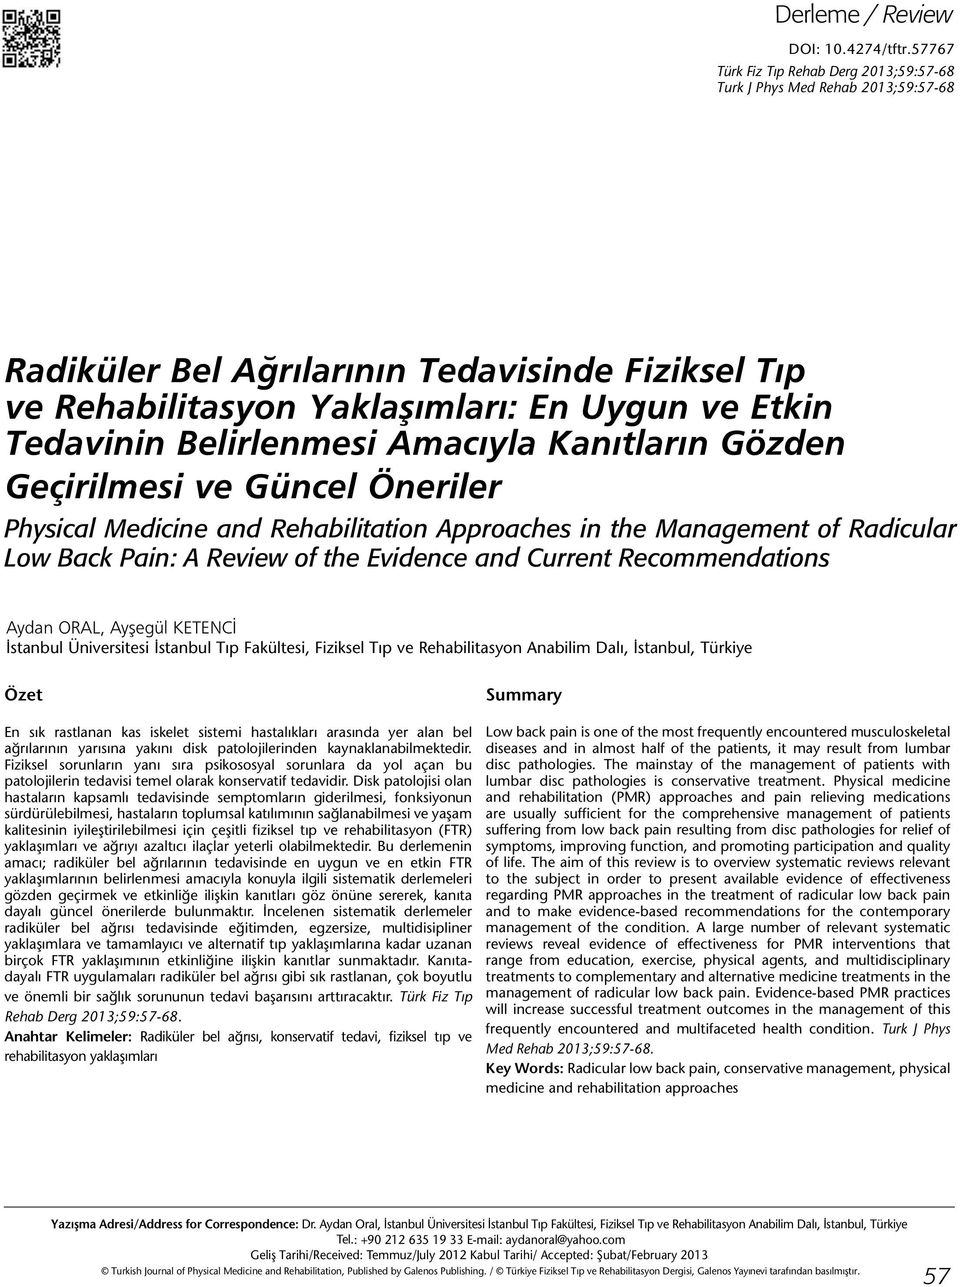 Belirlenmesi Amacıyla Kanıtların Gözden Geçirilmesi ve Güncel Öneriler Physical Medicine and Rehabilitation Approaches in the Management of Radicular Low Back Pain: A Review of the Evidence and